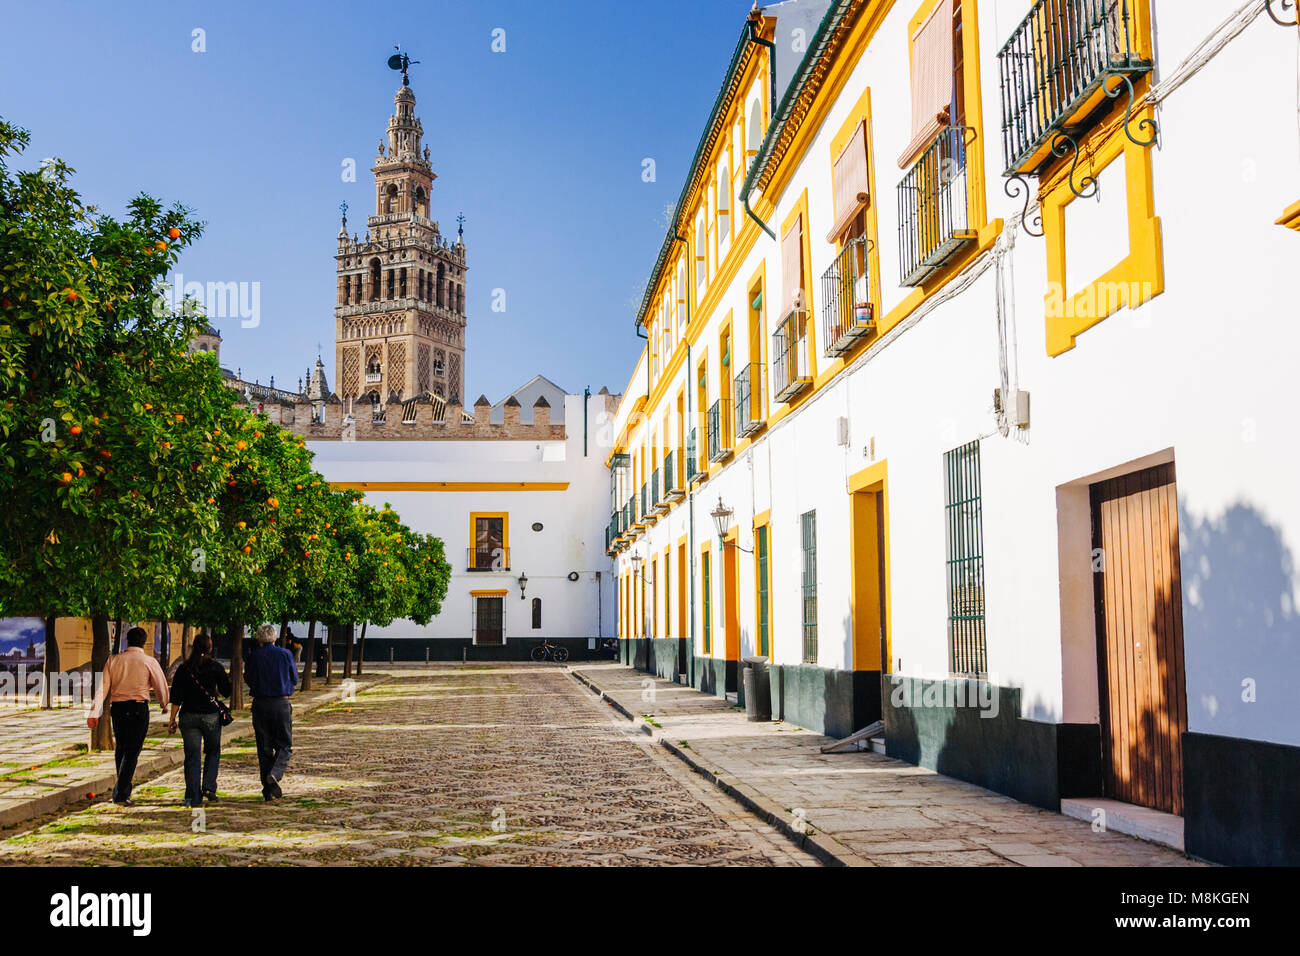 Seville, Andalusia, Spain : People walk at the Patio de Banderas square in Santa Cruz district with Giralda bell - Stock Image